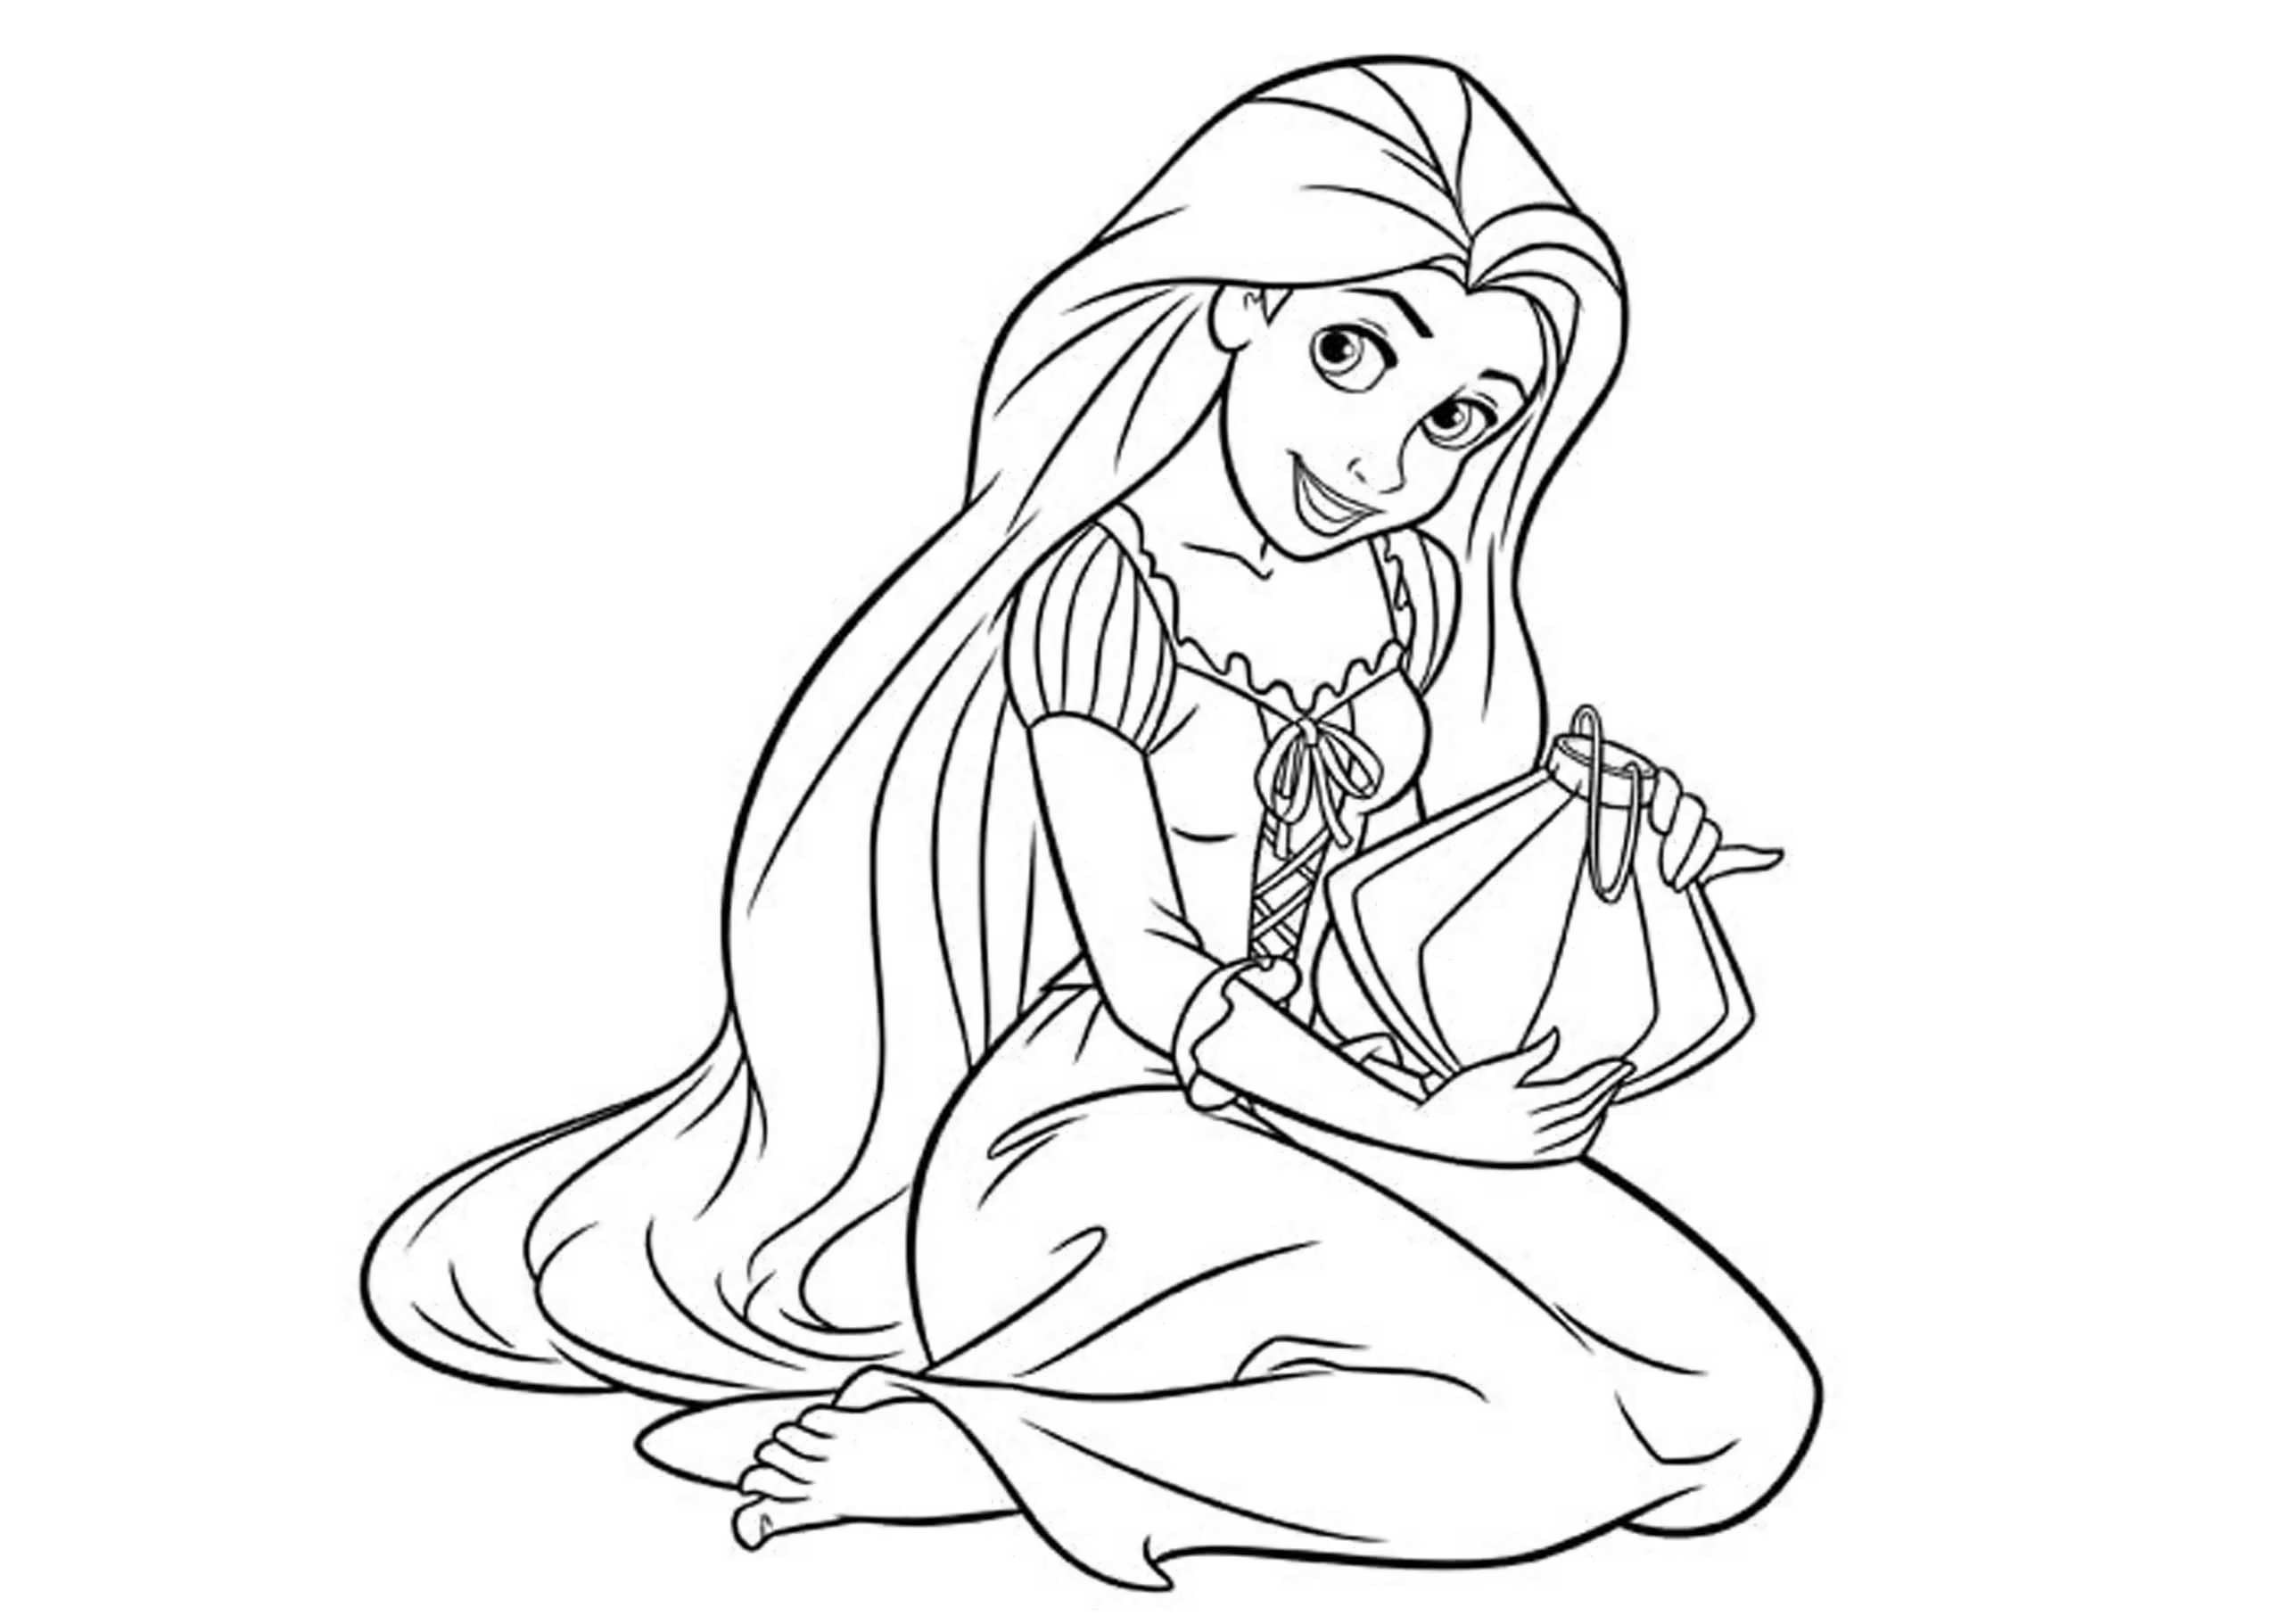 Cute Disney Princess Coloring Pages For Girls Free Coloring Sheets Princess Coloring Pages Disney Princess Coloring Pages Princess Coloring